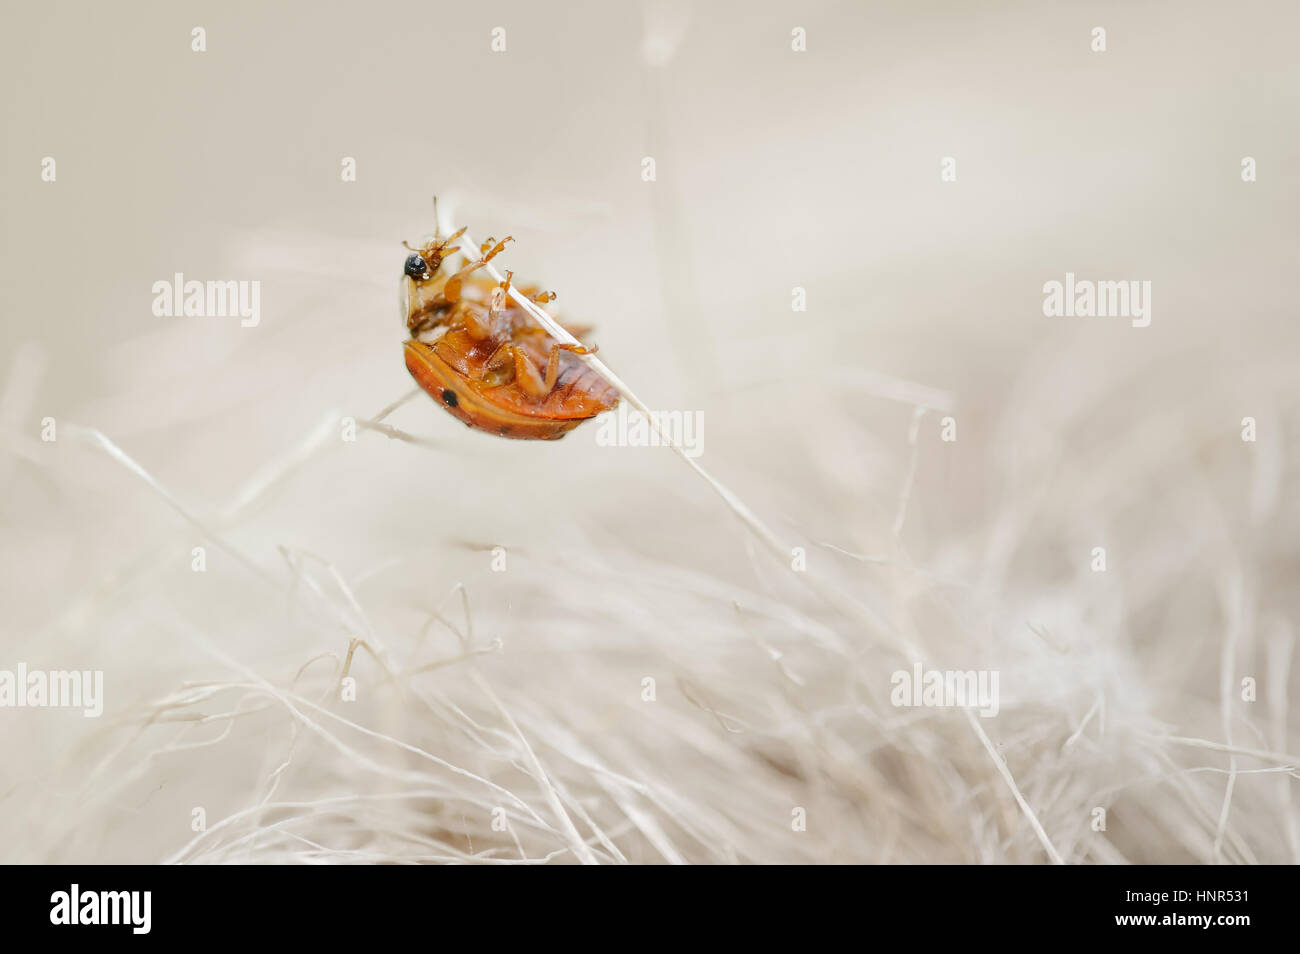 Ladybug looking like a monster from horror. Scary bug climbing on beige stalks. Stock Photo